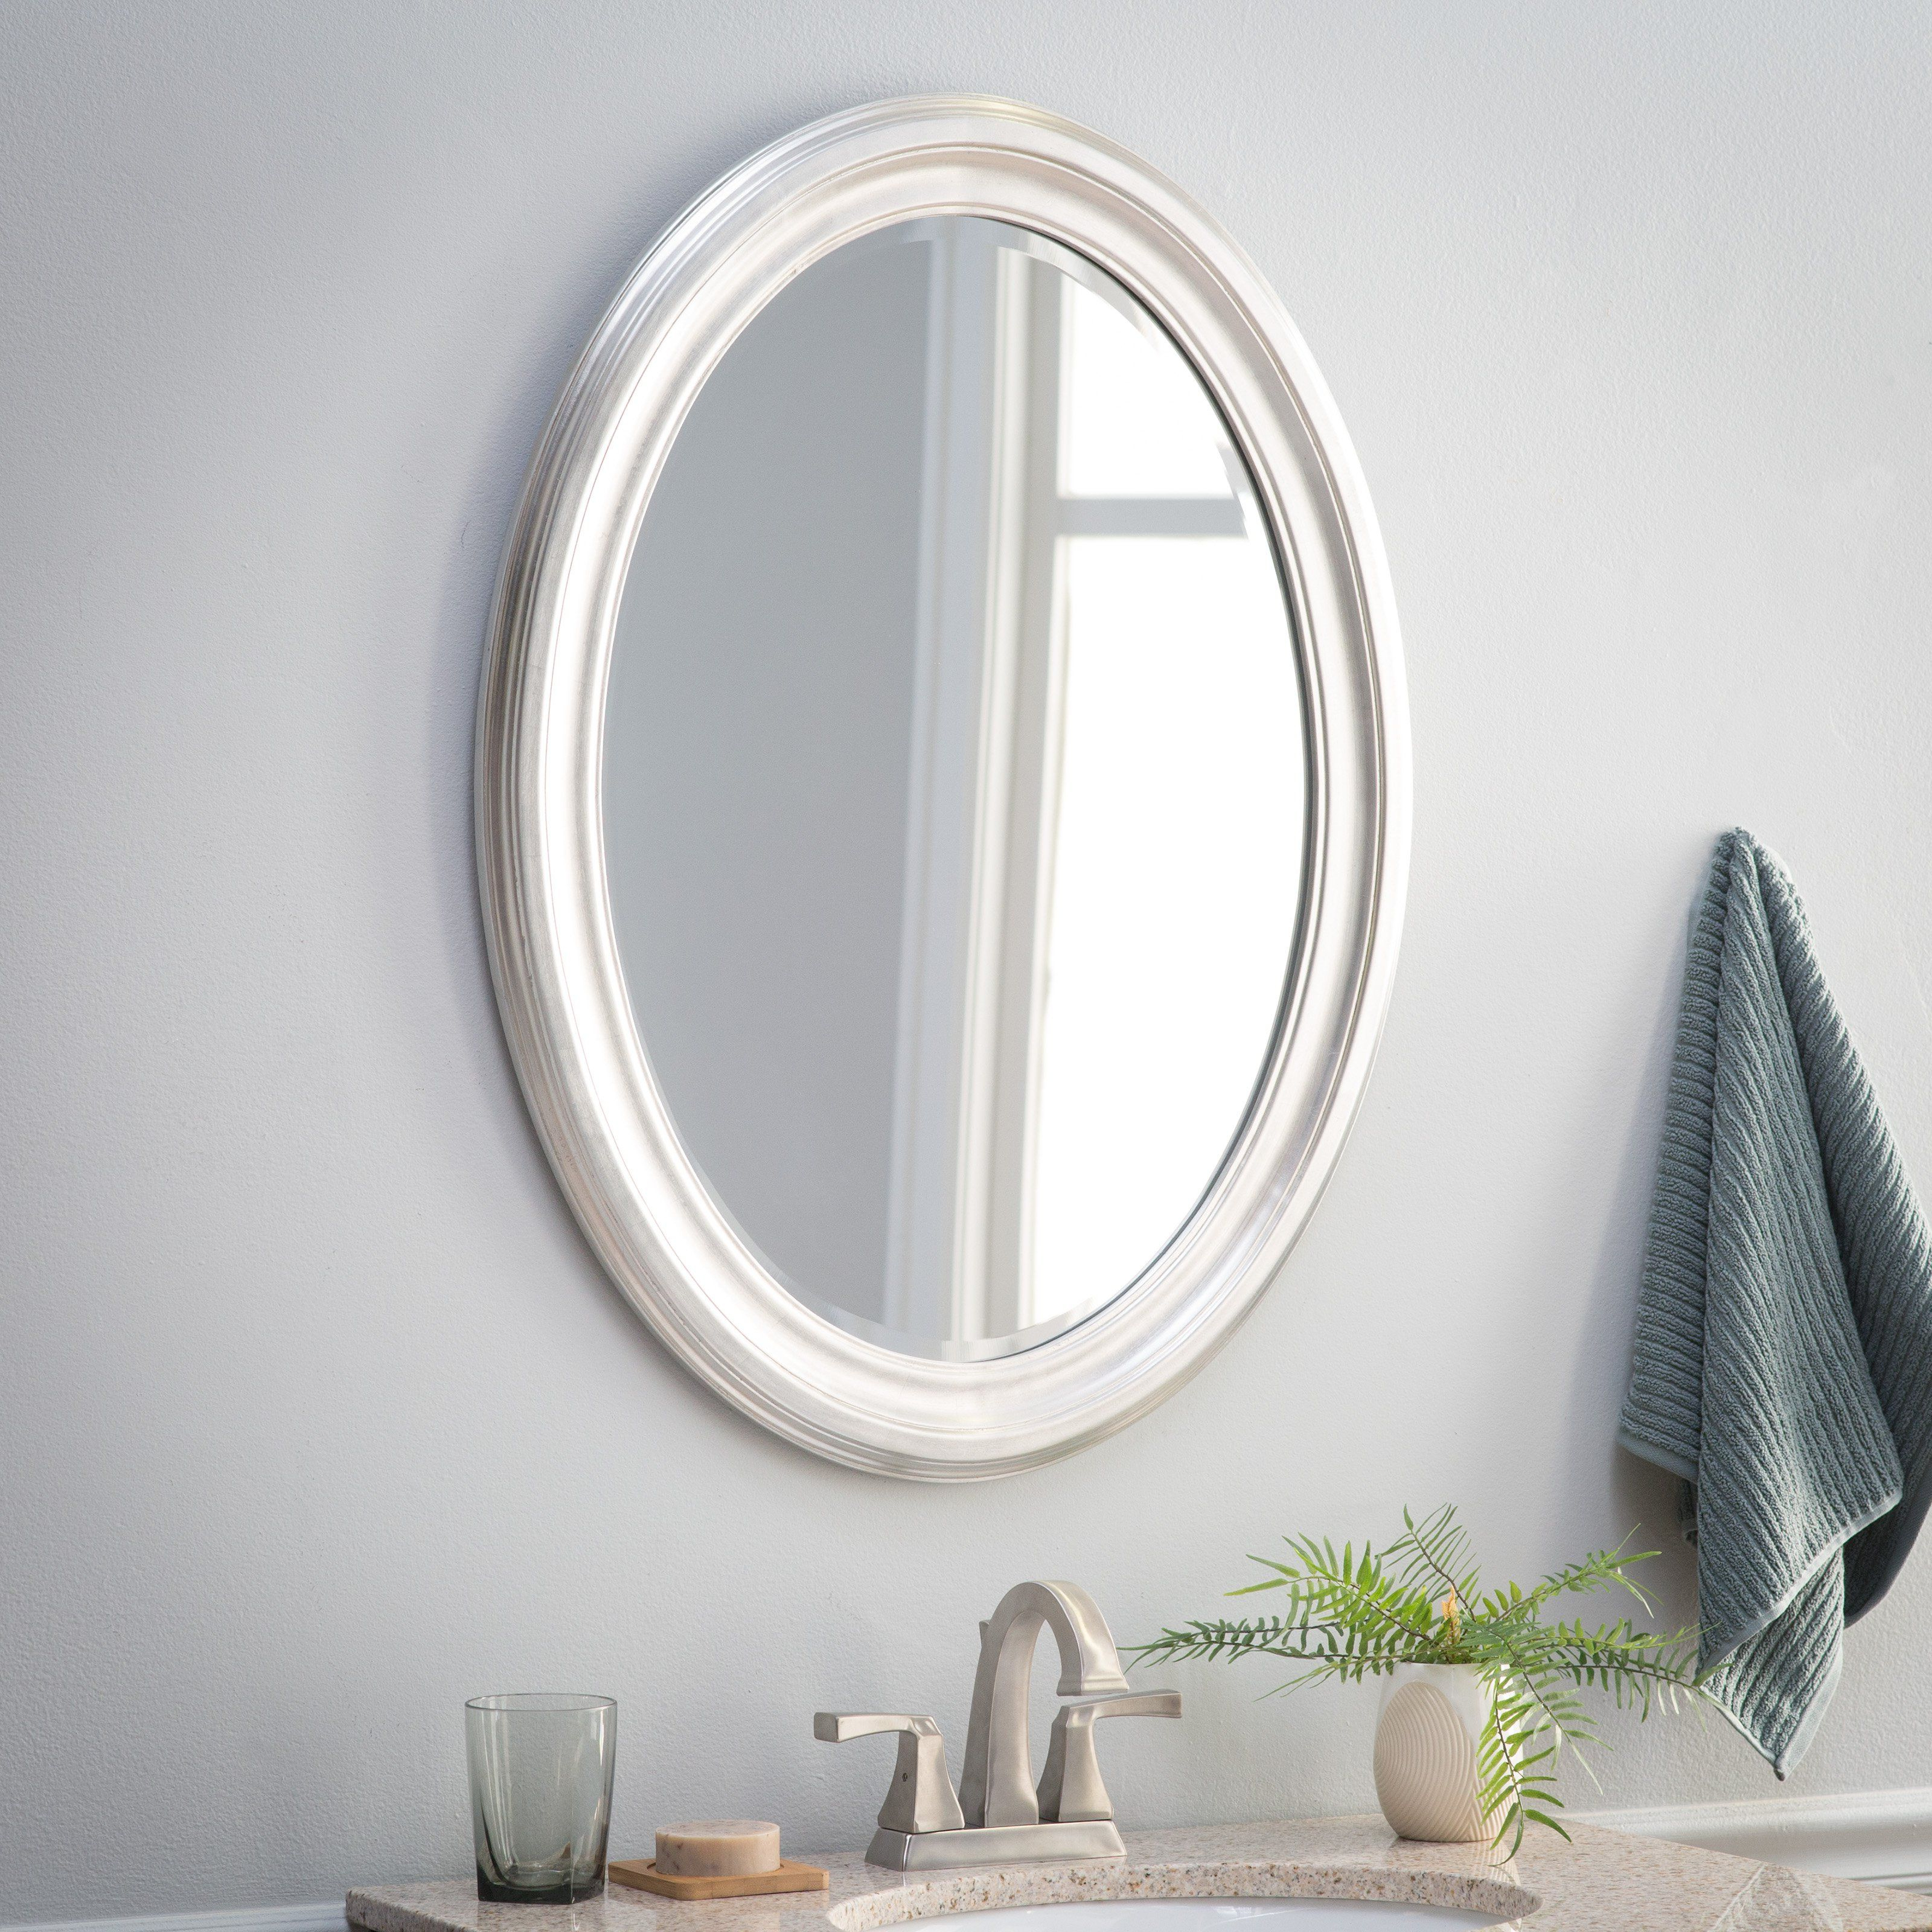 2019 Point Reyes Molten Round Wall Mirrors In Belham Living Oval Wall Mirror – Brushed Nickel – 25w X 33h In (View 12 of 20)